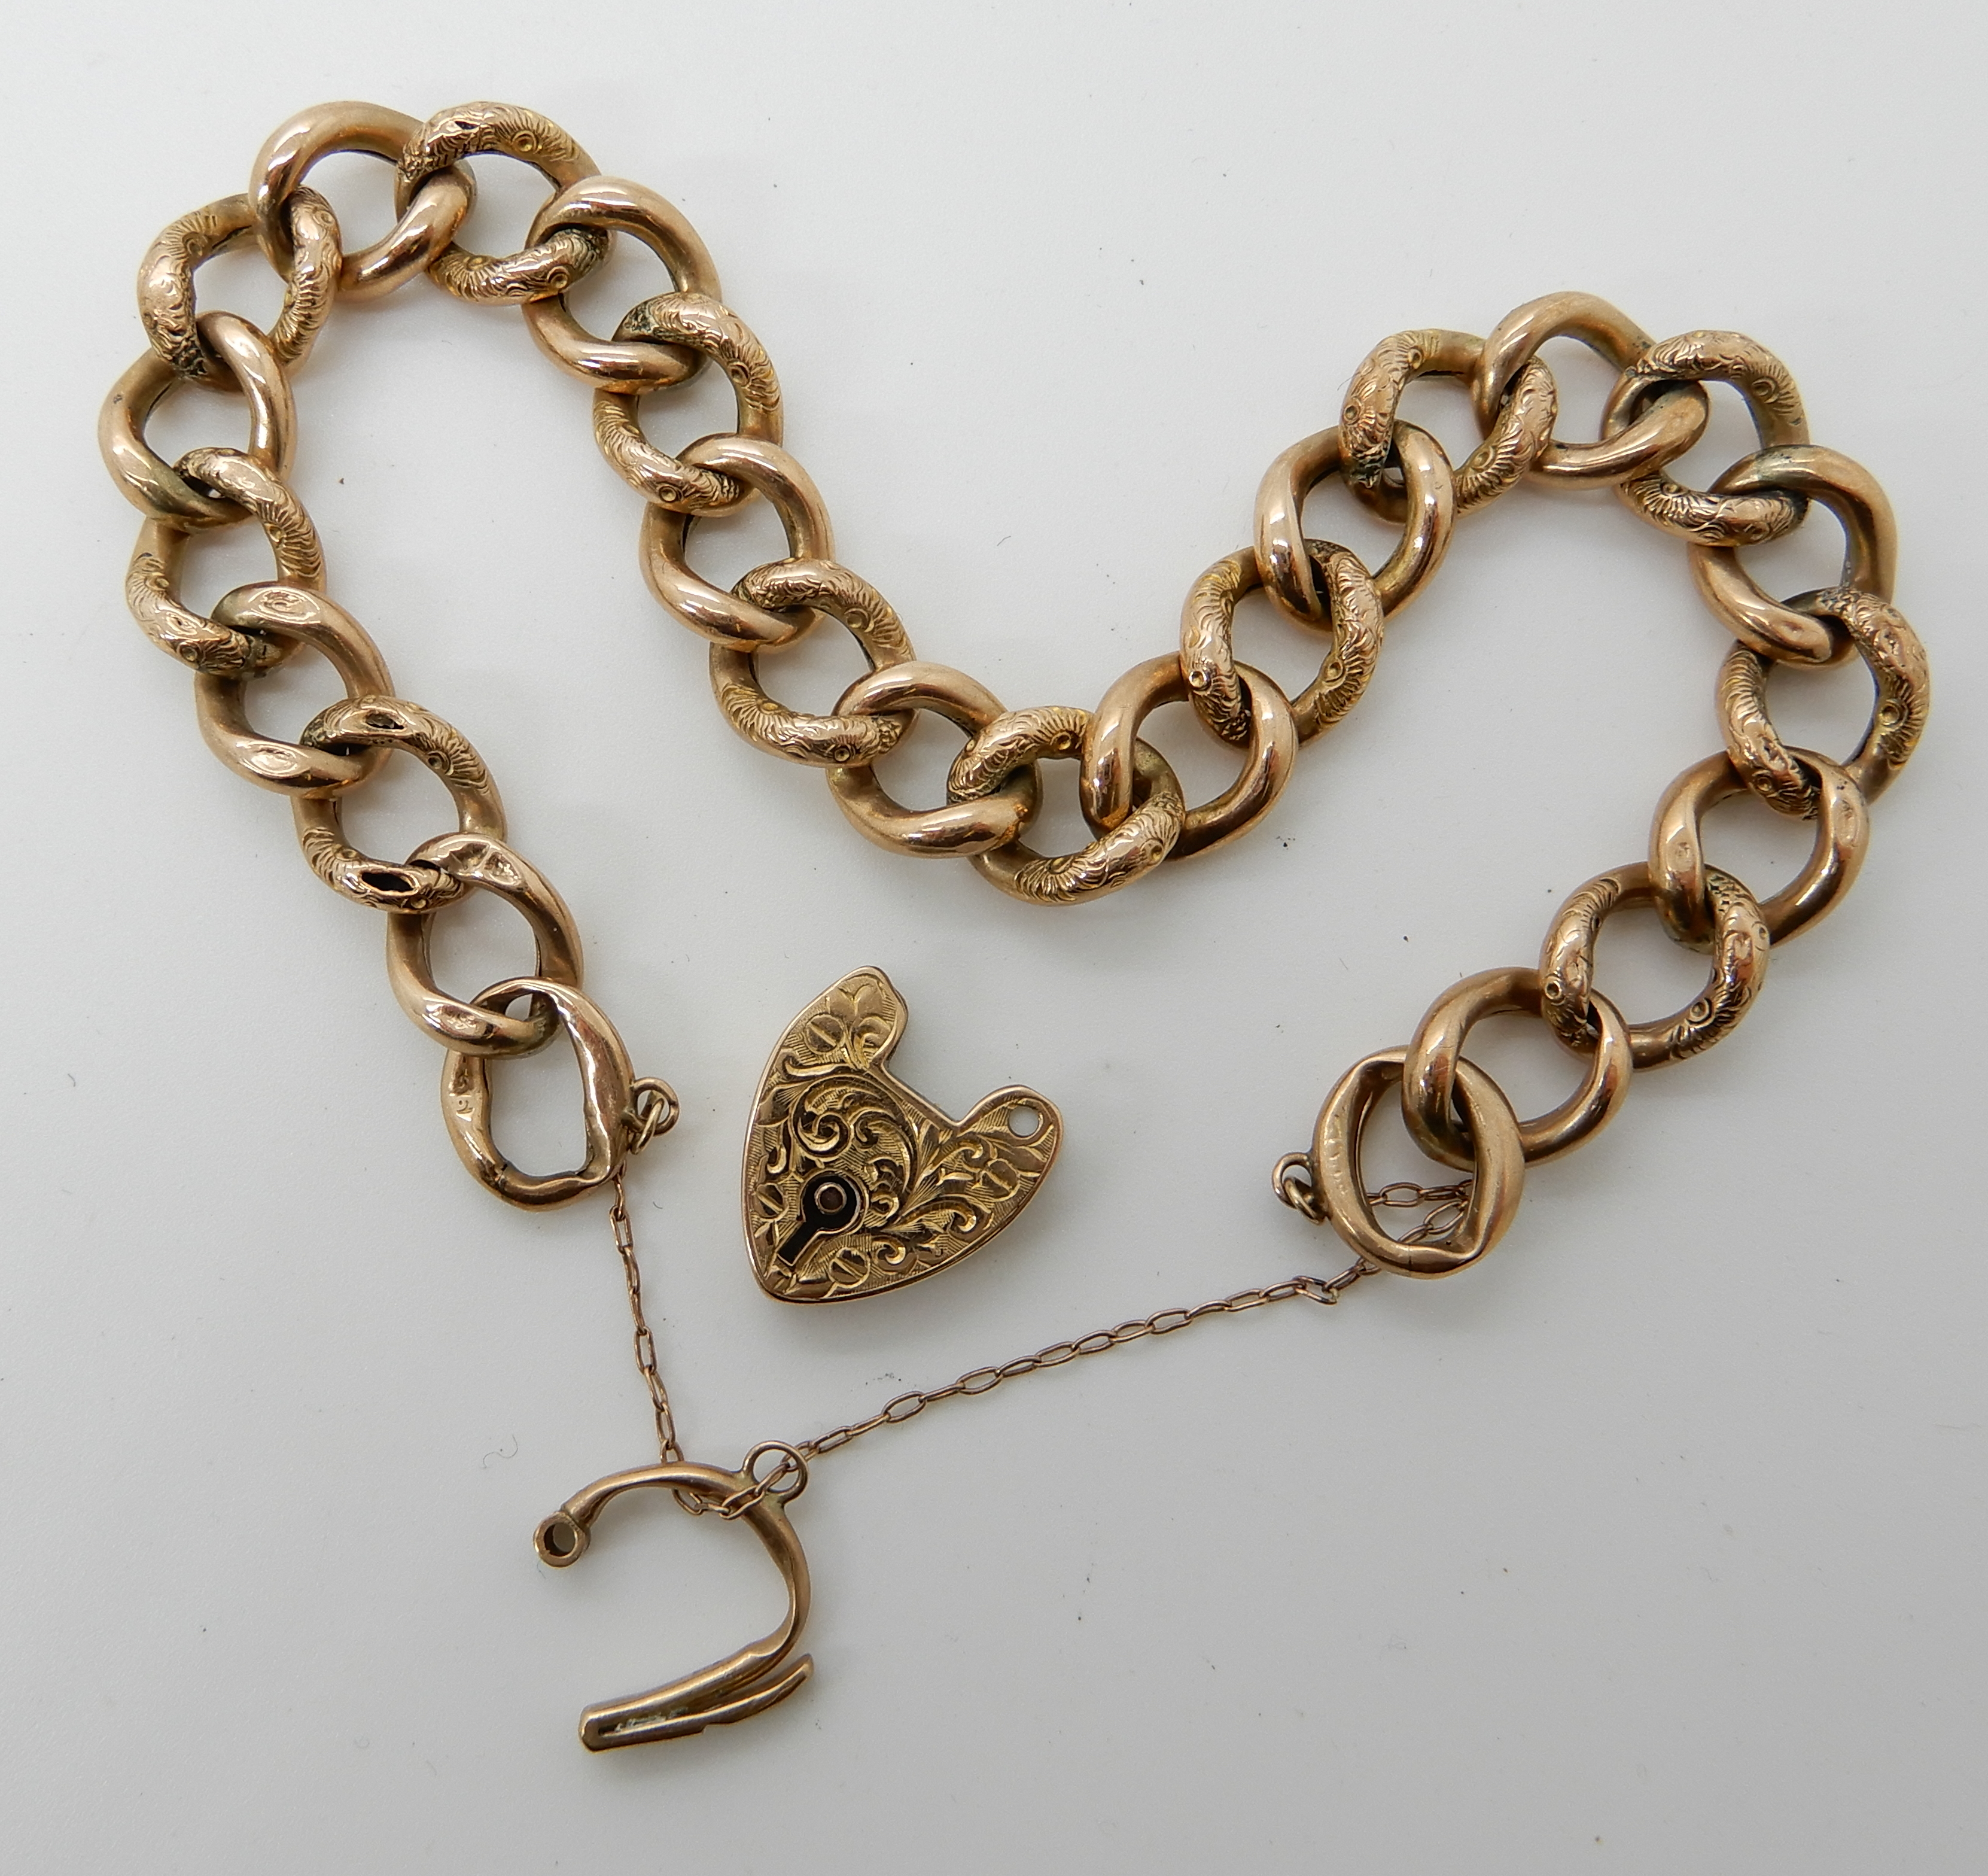 Lot 48 - A 9ct gold hollow construction curb link bracelet with heart shaped clasp (af) Condition Report: